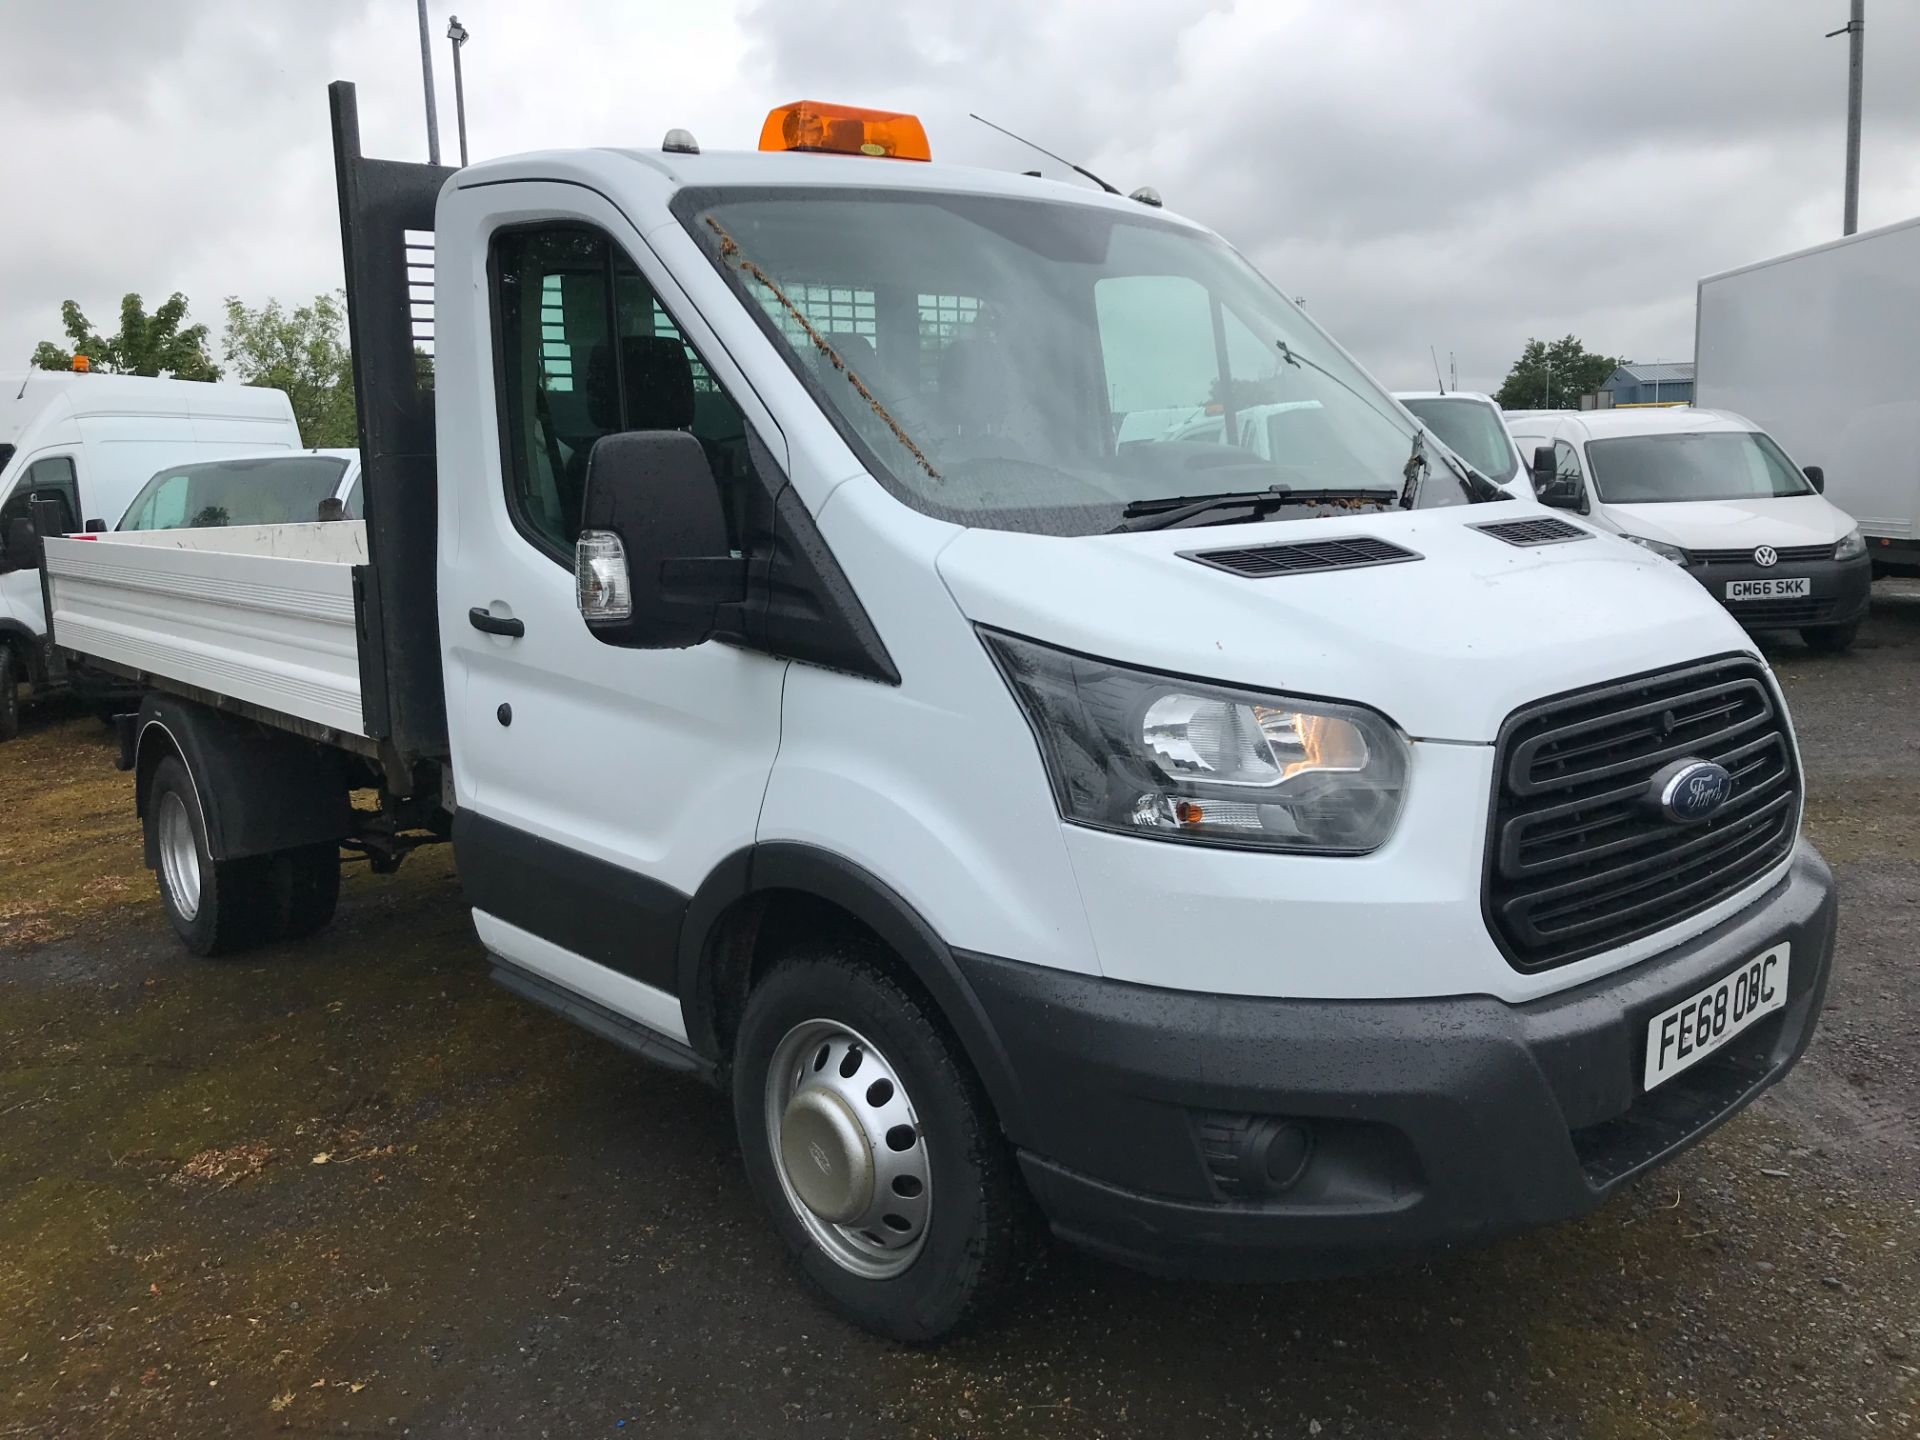 2018 Ford Transit 2.0 Tdci 130Ps Chassis Cab (FE68OBC)